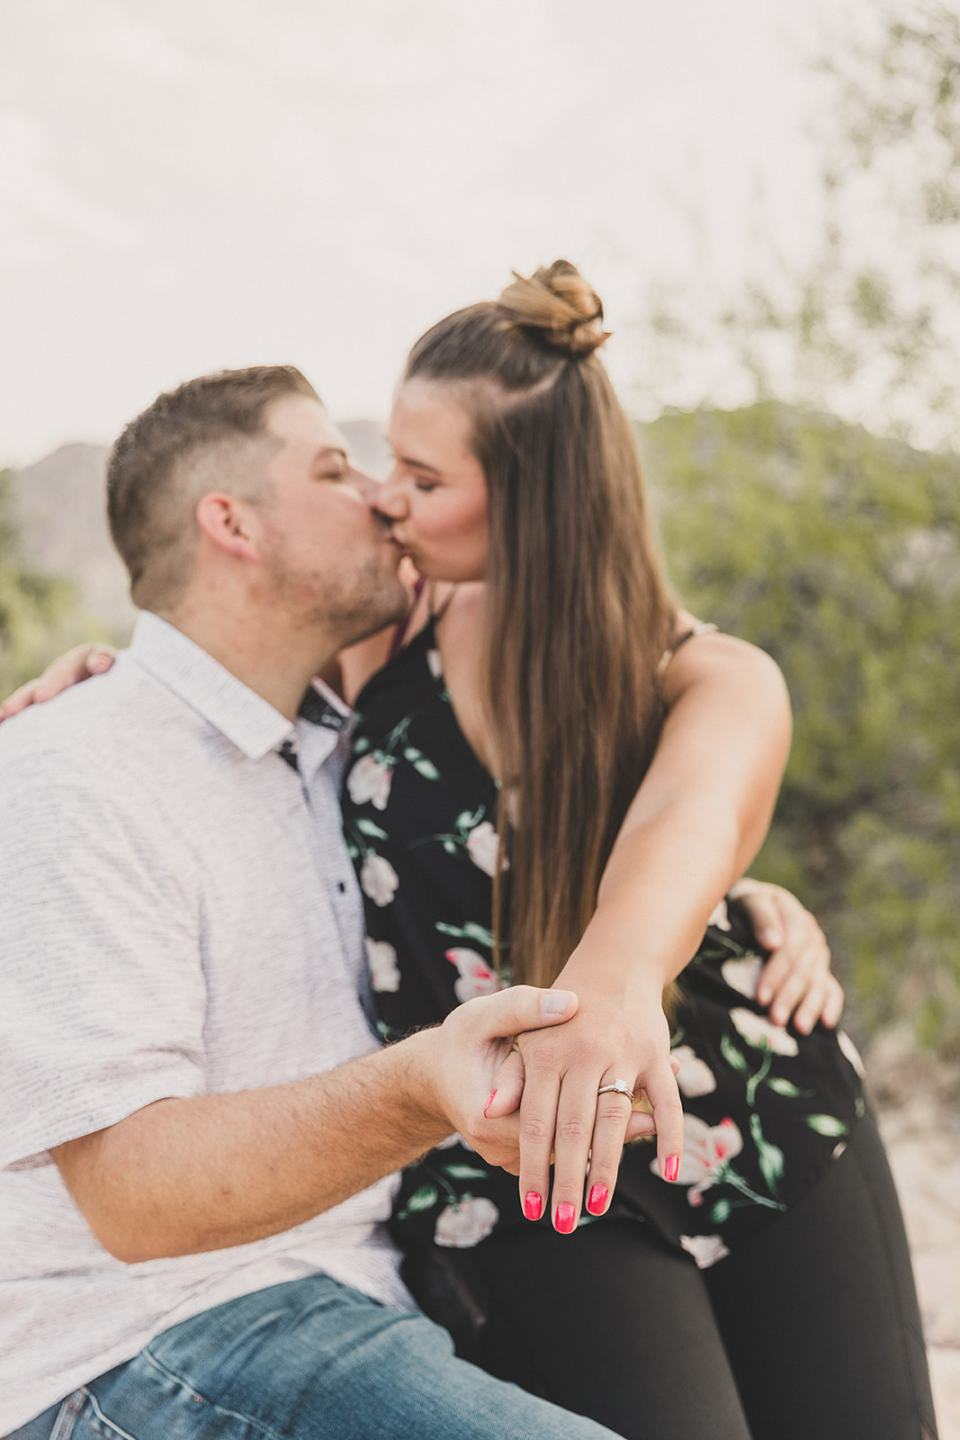 engaged couple kisses in Las Vegas desert after proposal